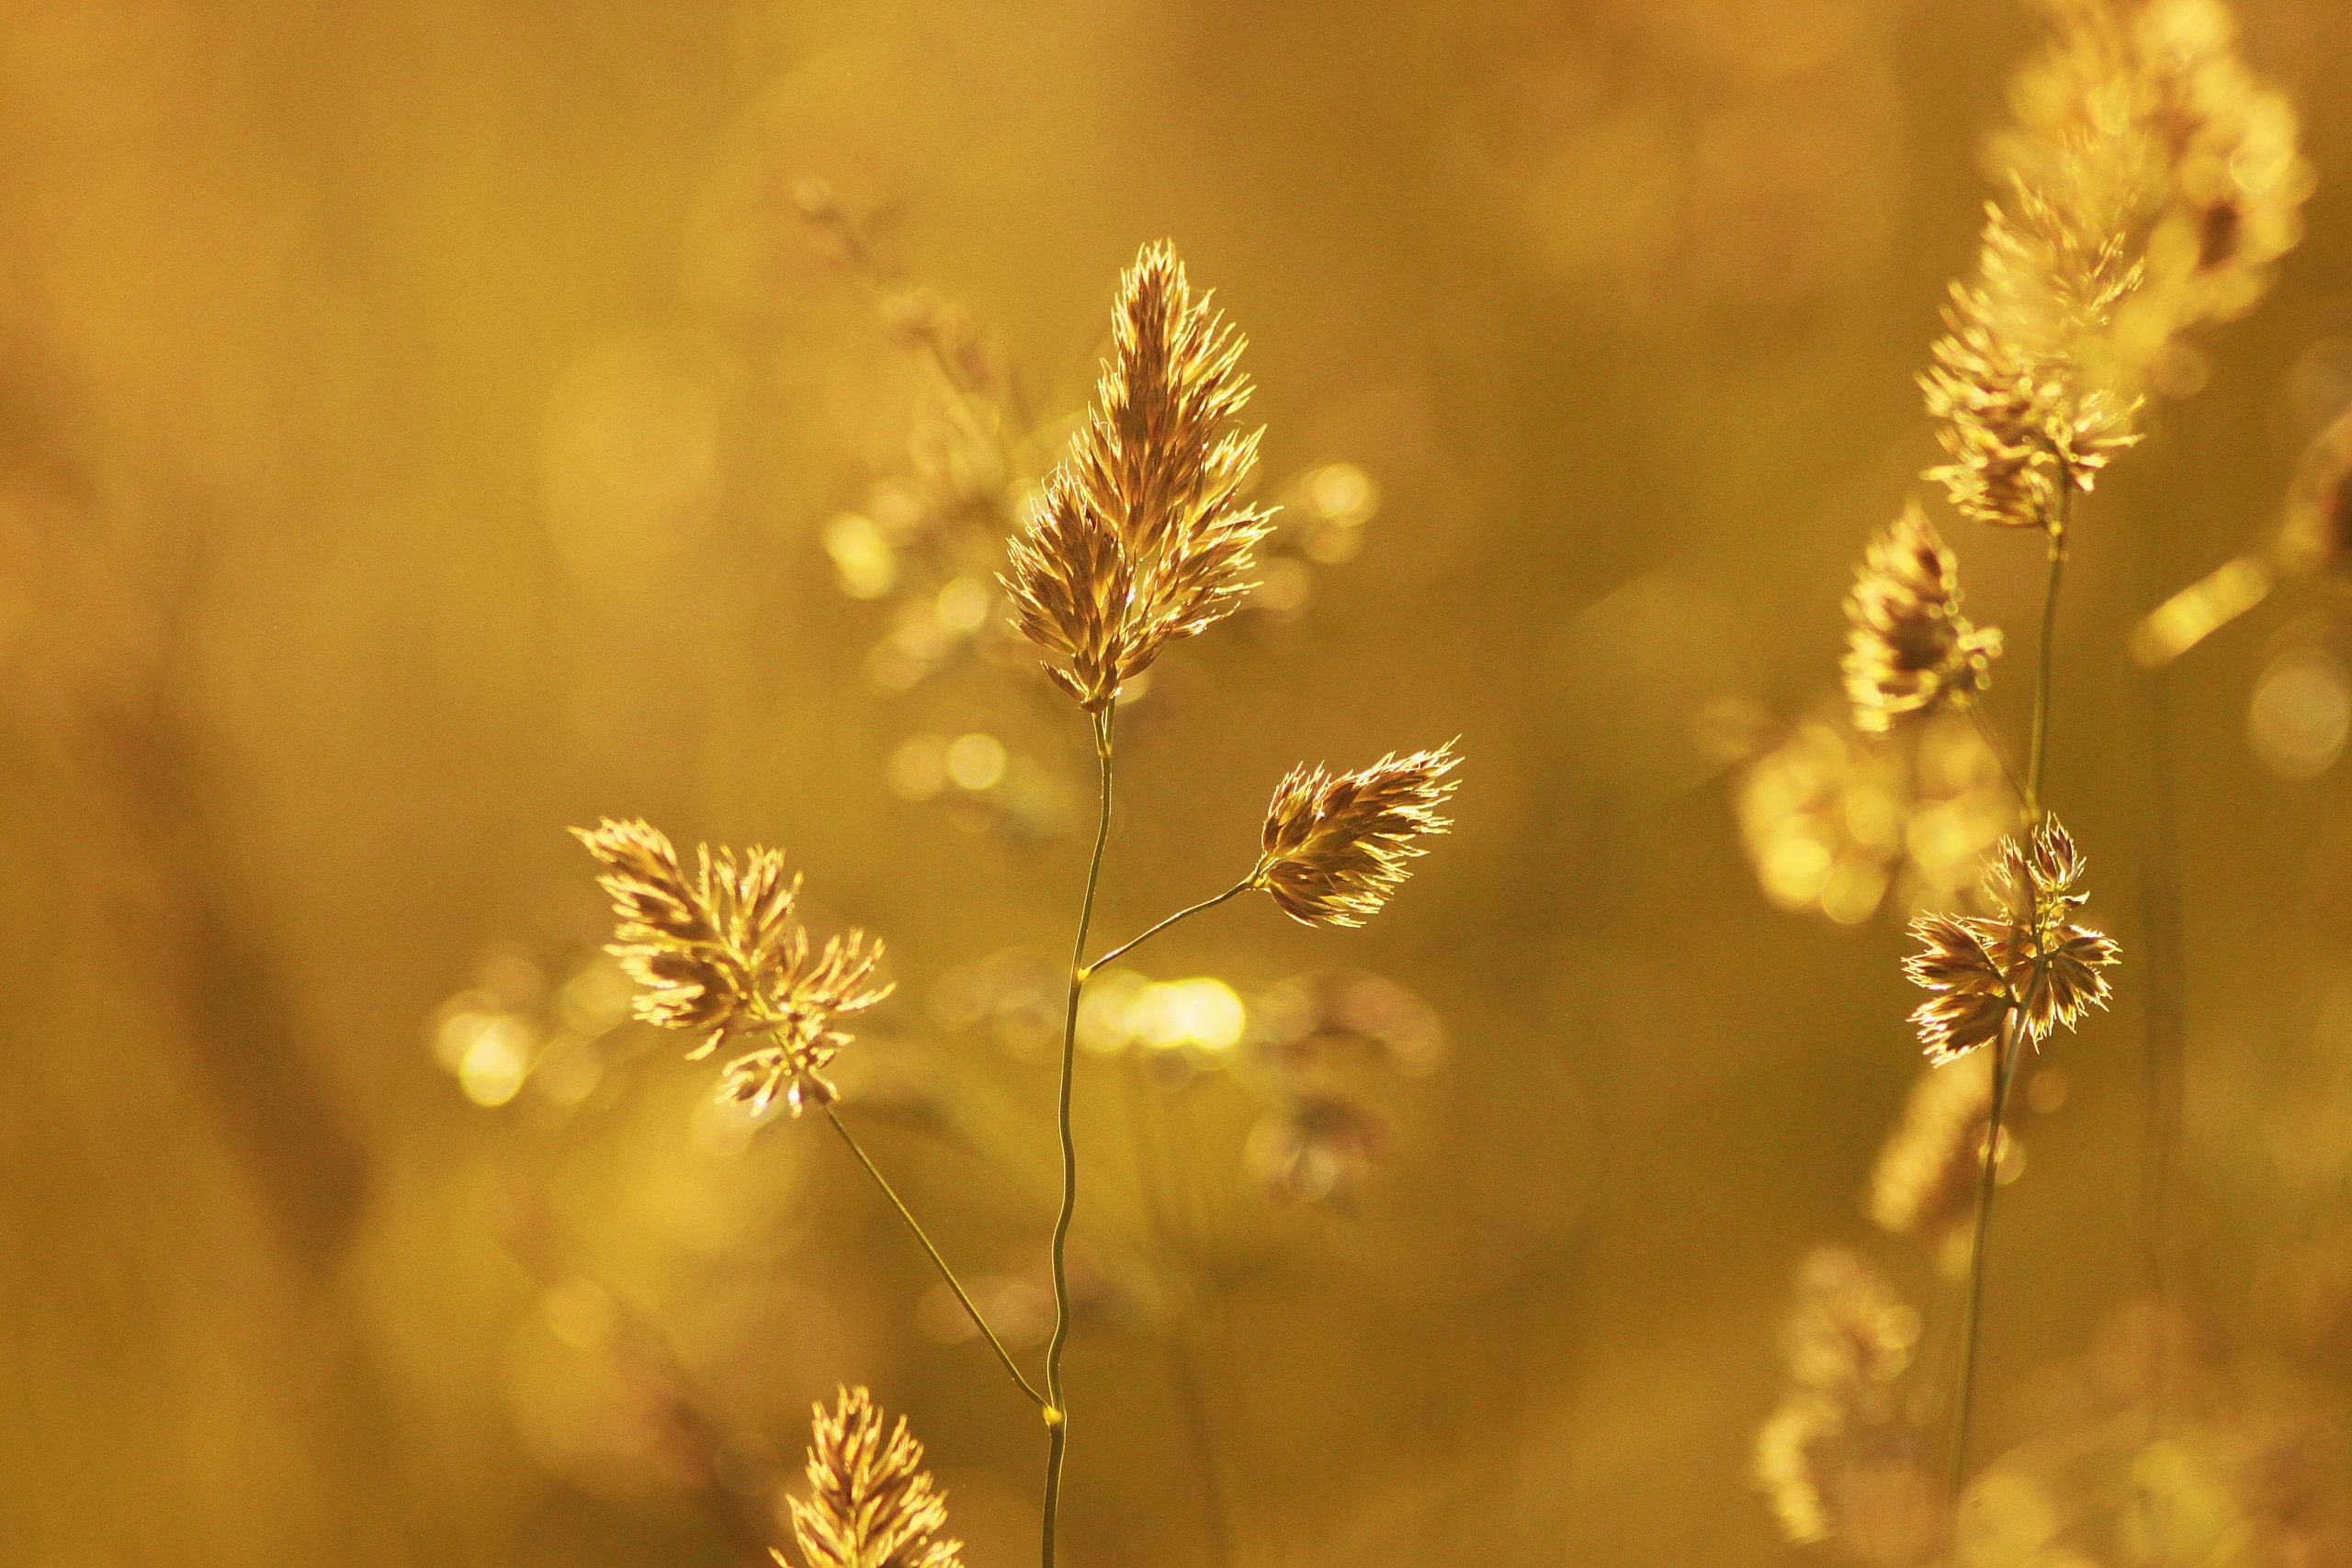 close-up-of-wheat-plant-during-sunset-256643